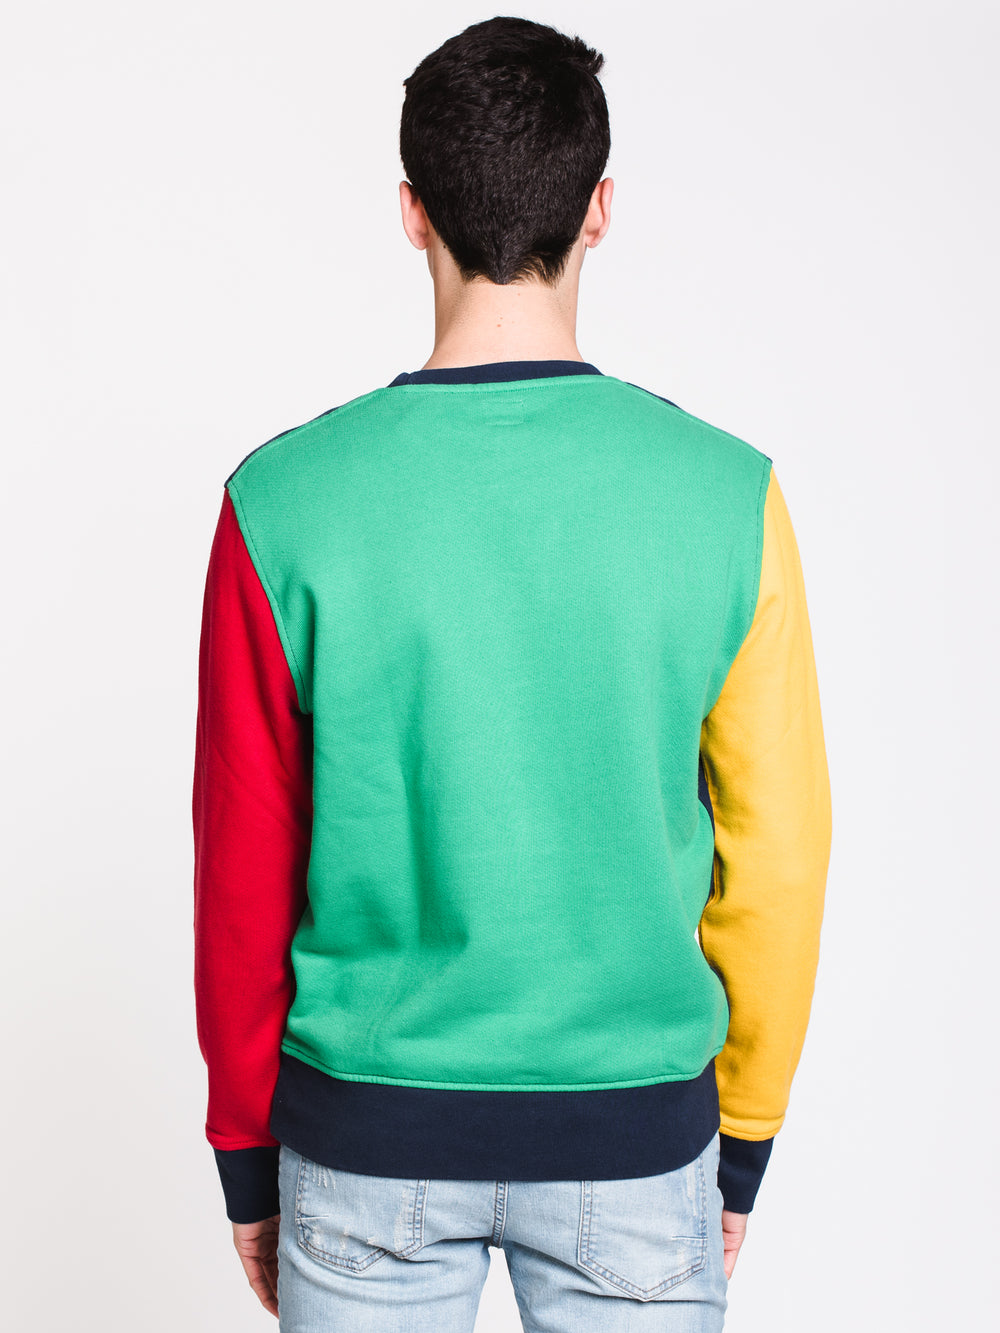 MENS HM COLORBLOCK CREW - NVY